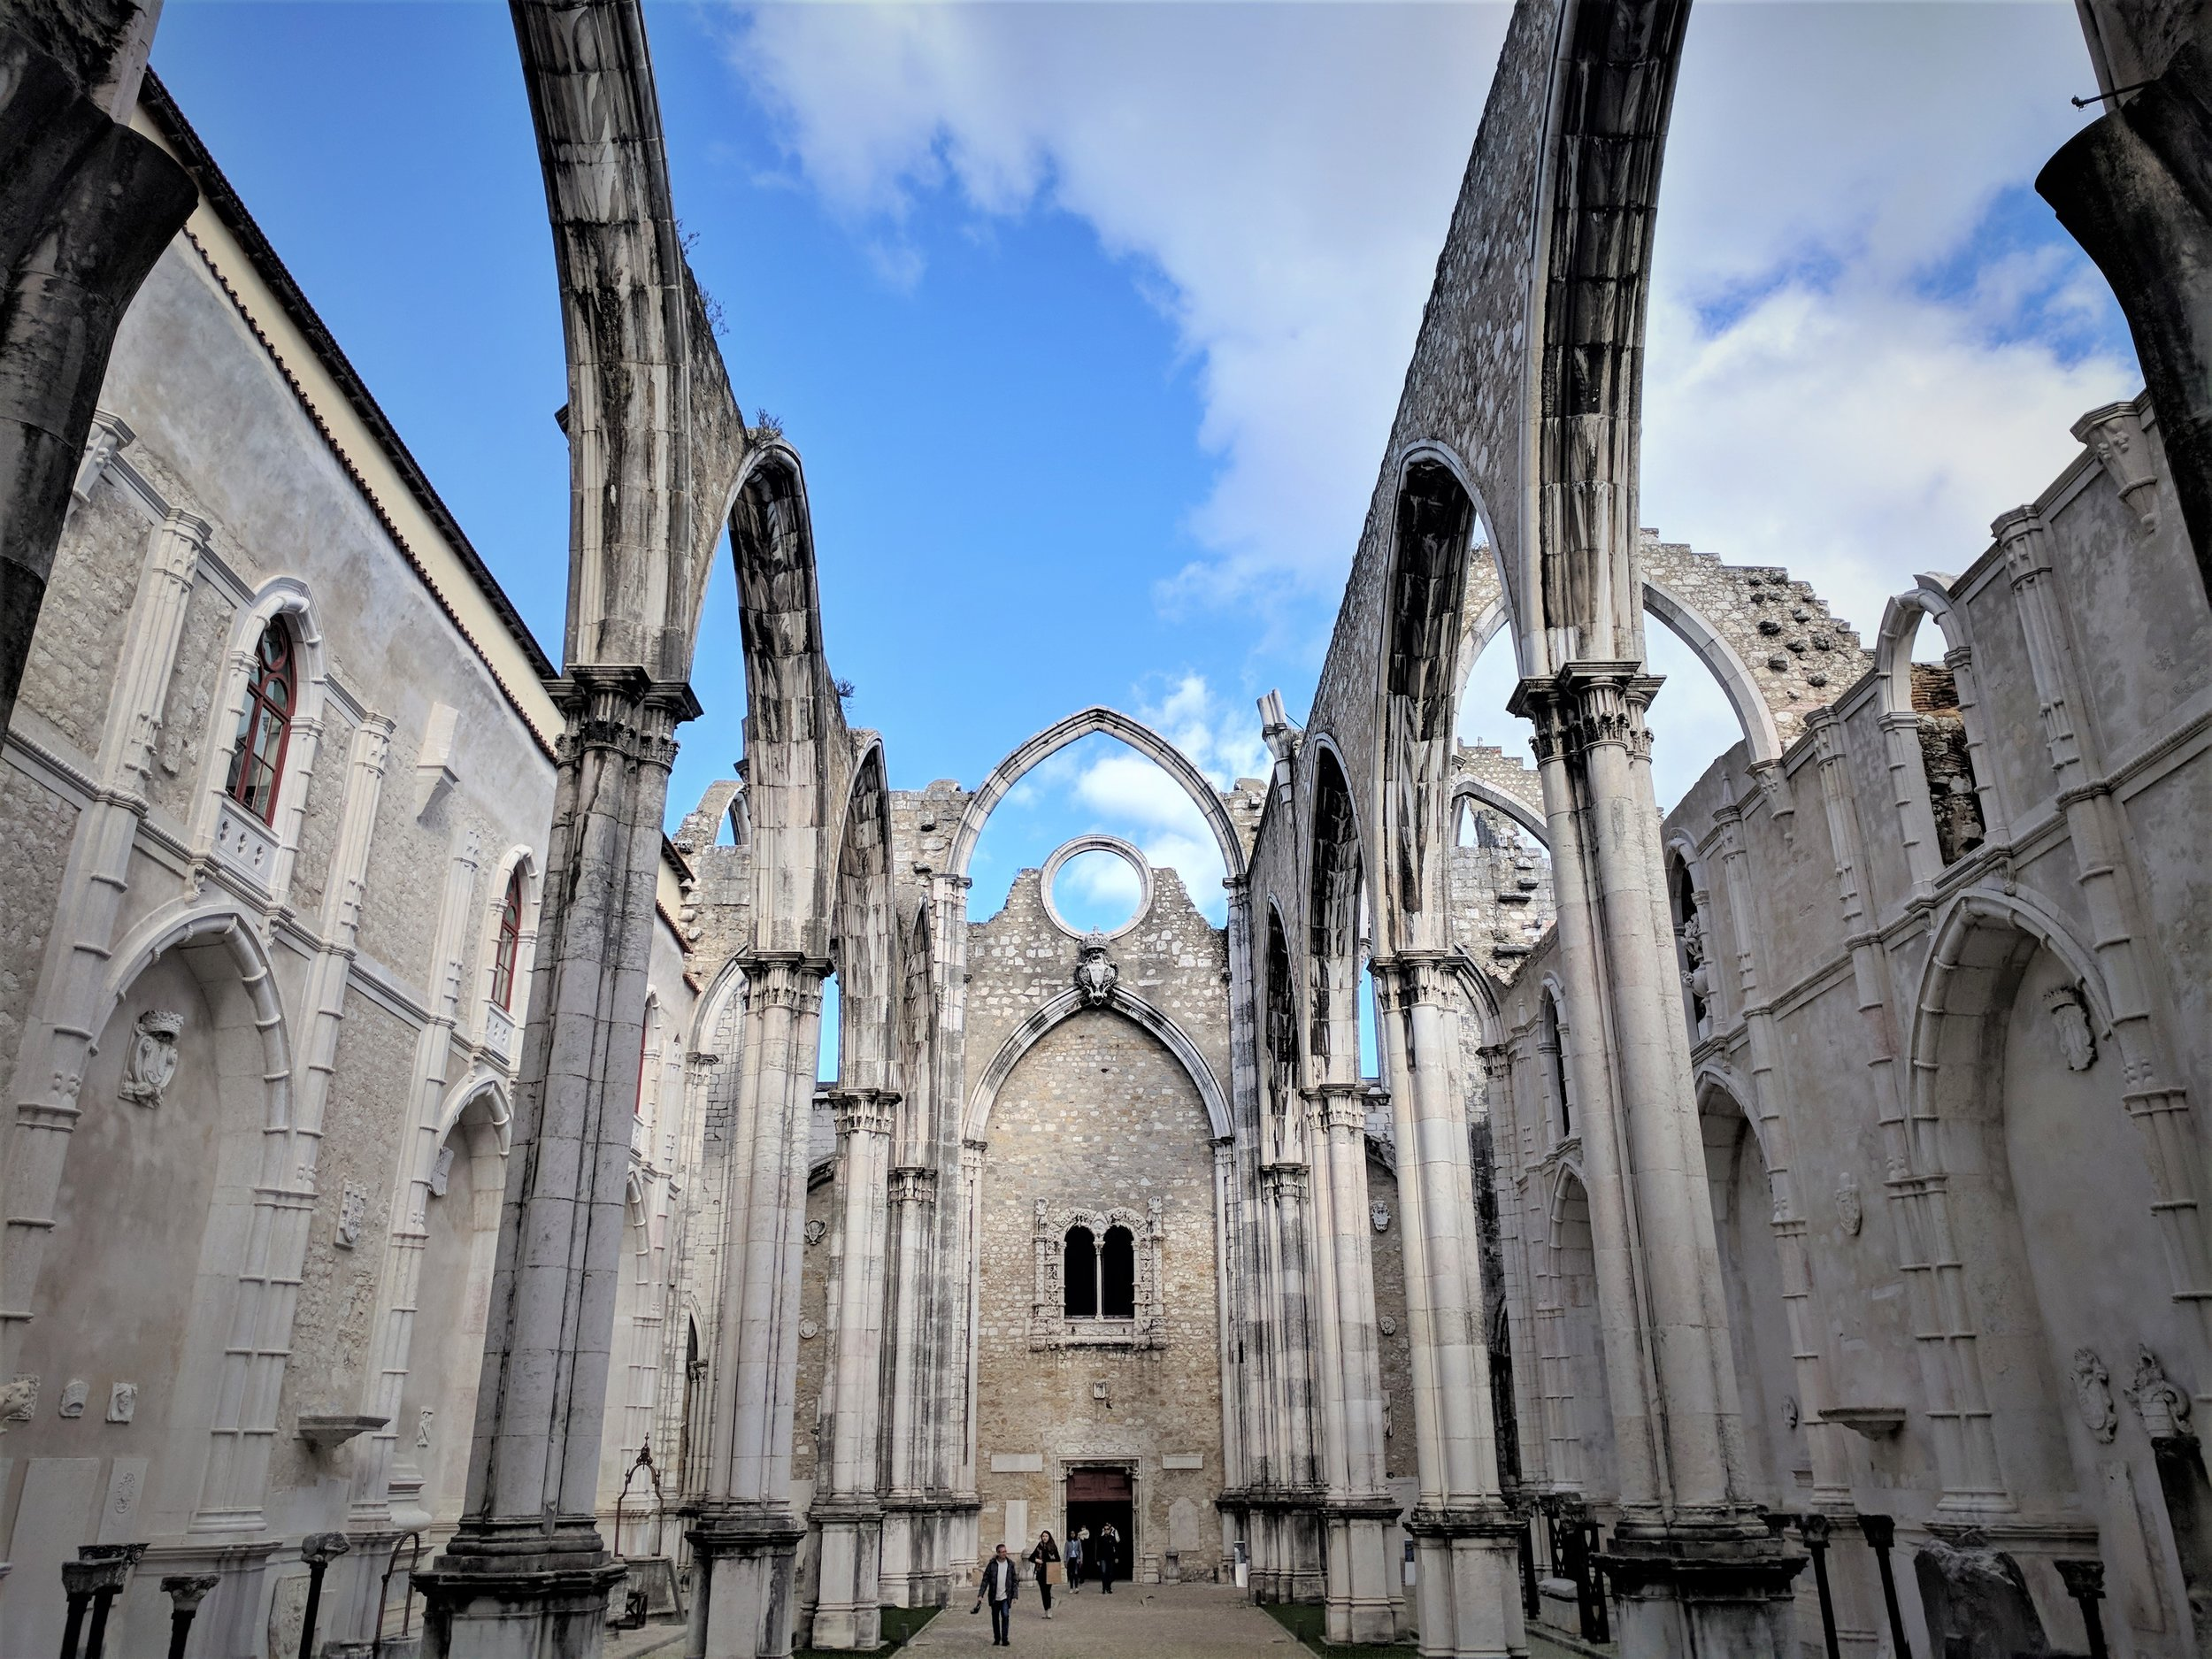 Ruins of the Carmo Convent